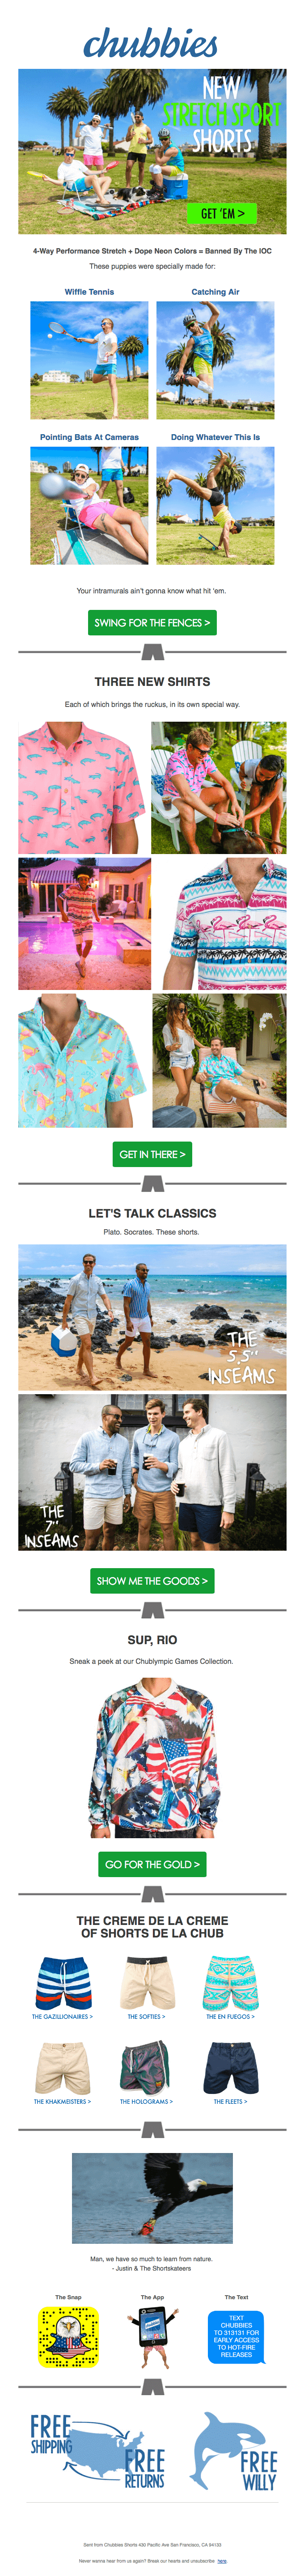 chubbies email example